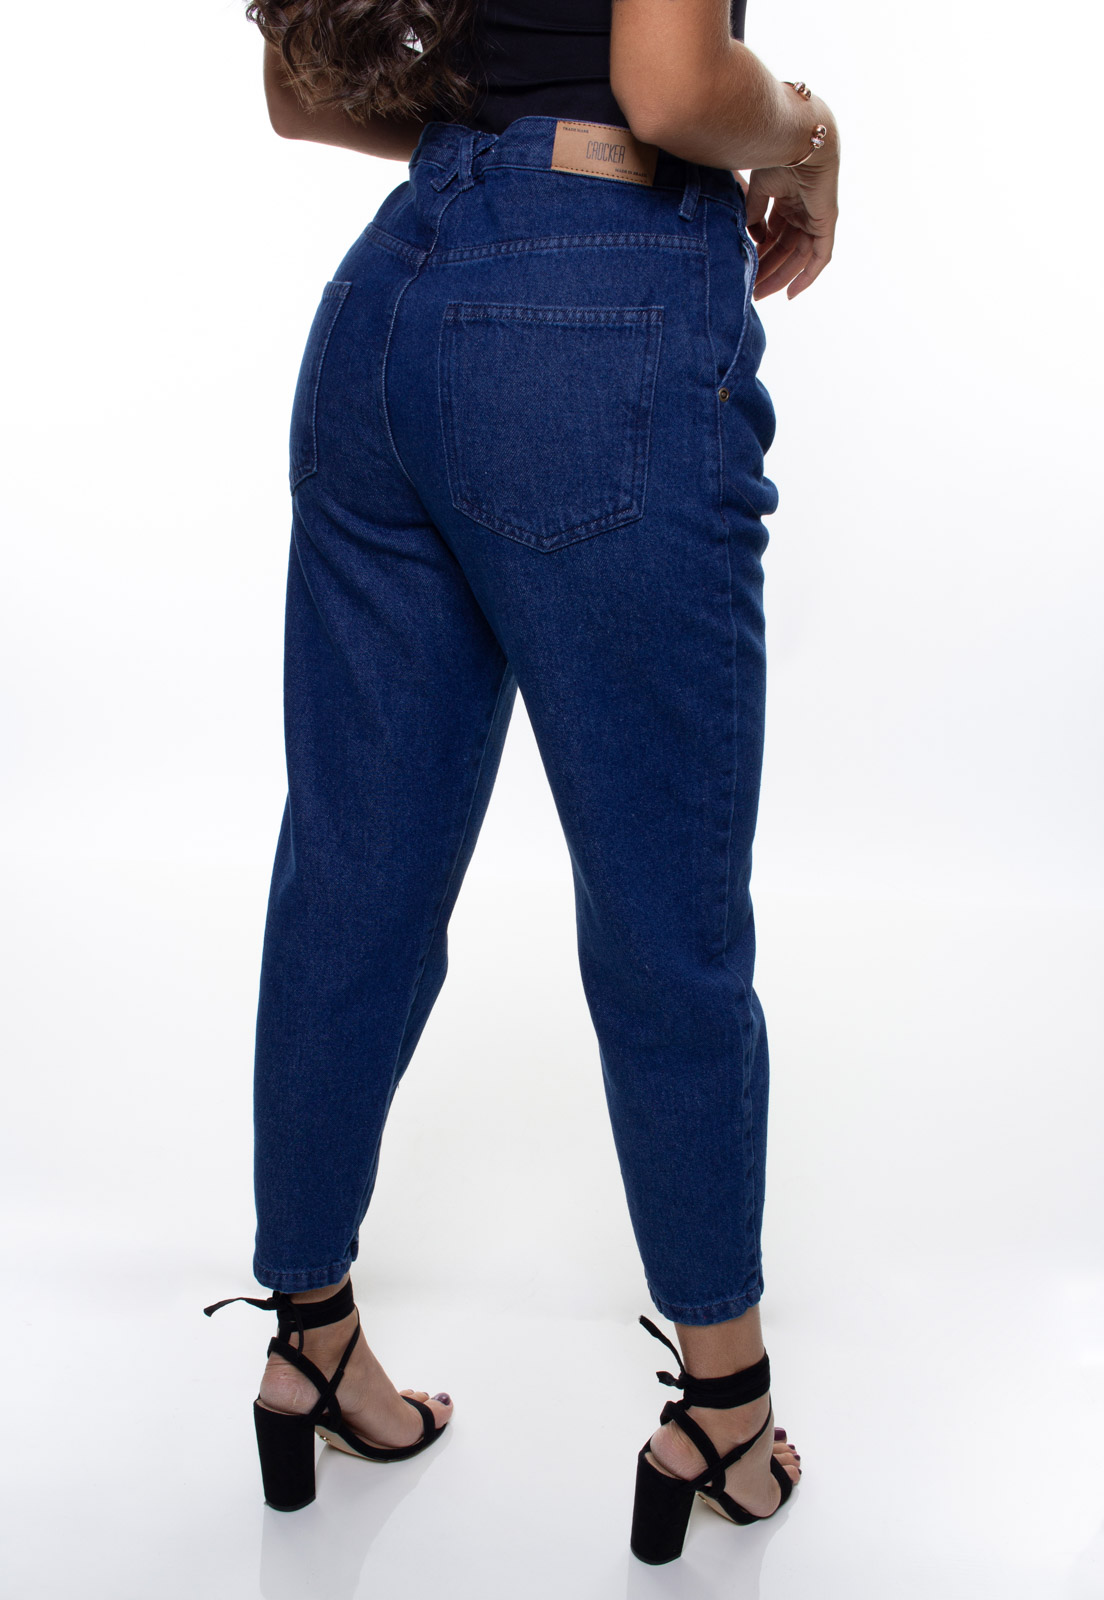 Calça Mom Fit Jeans Feminina Crocker - 48045  - CROCKER JEANS